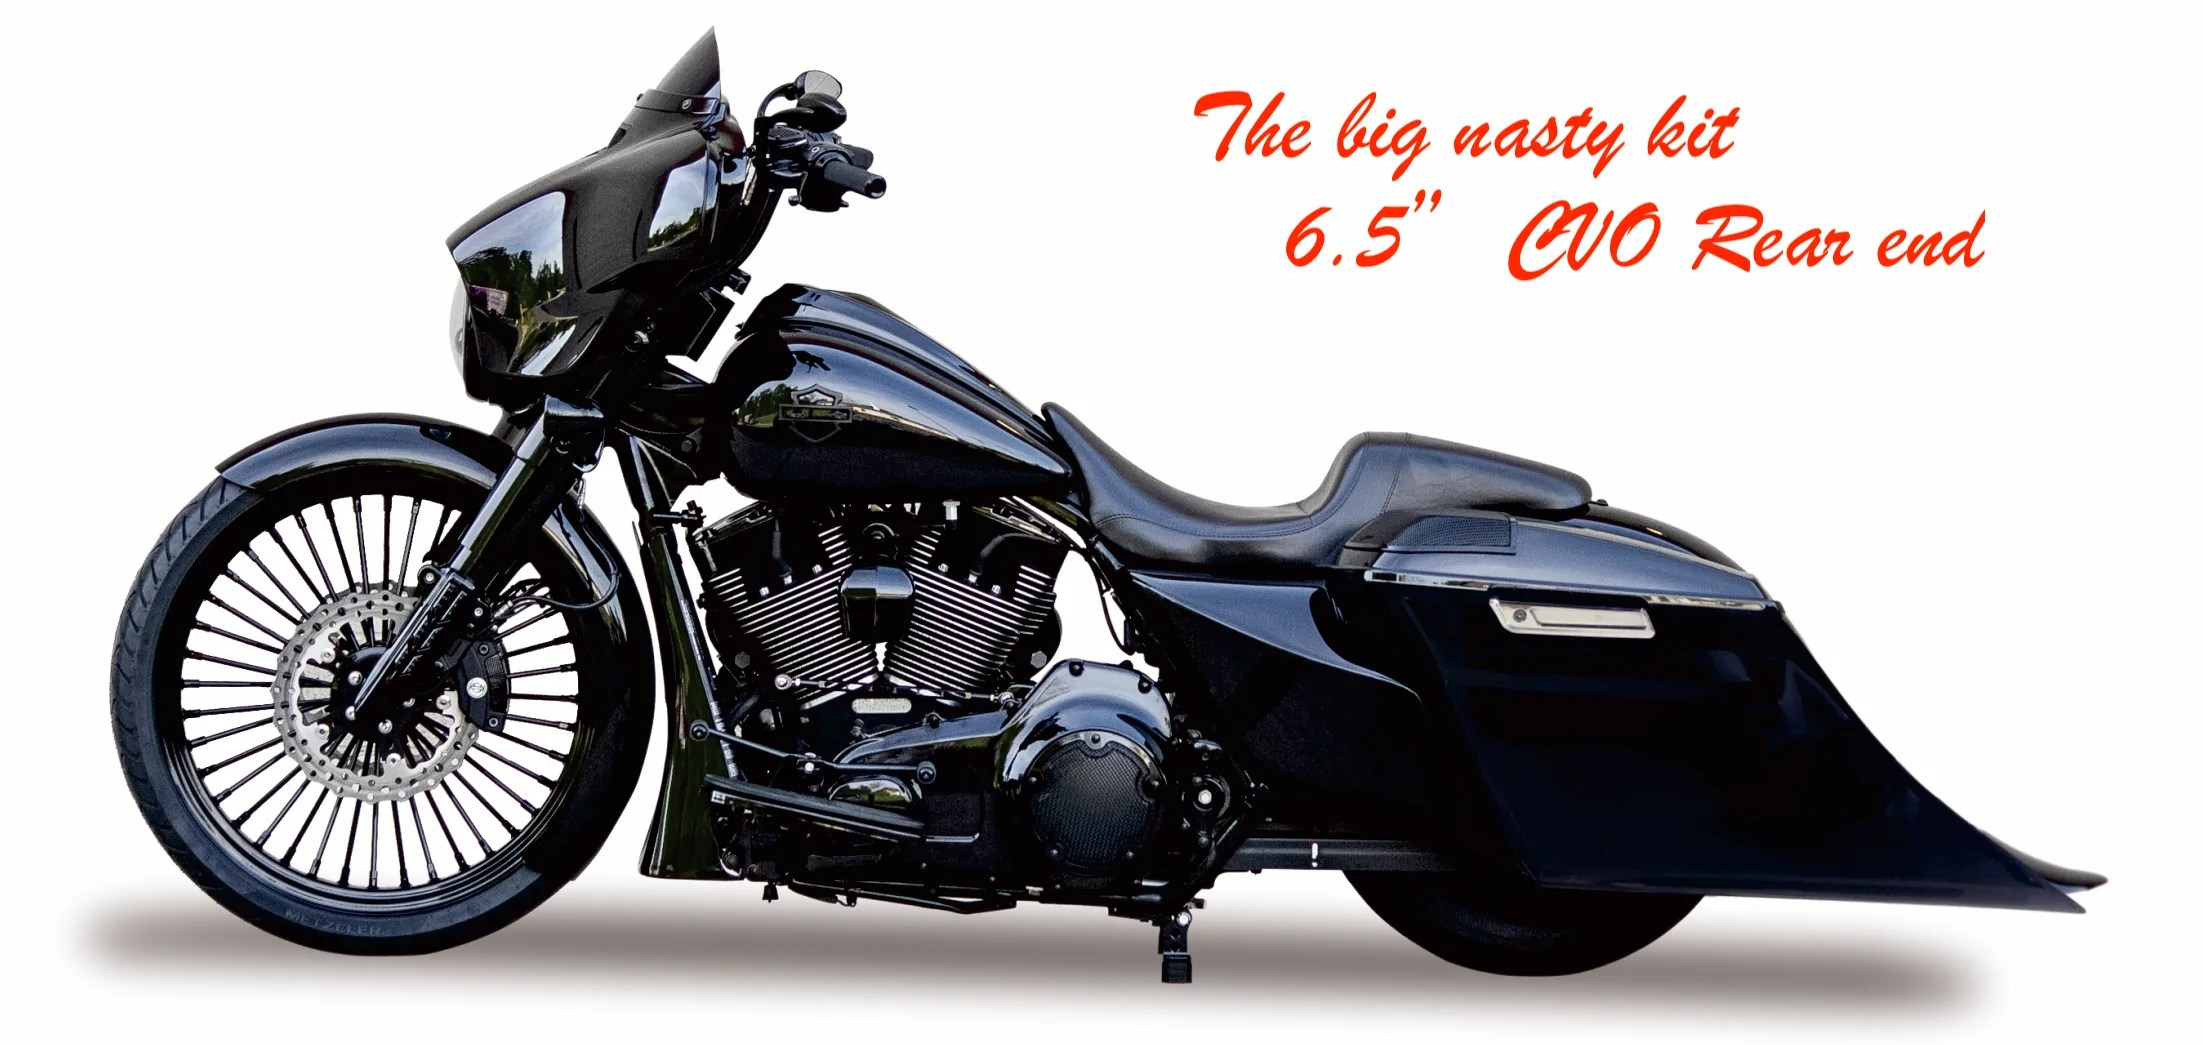 small resolution of  big nasty cvo style rear fender saddlebags for 2014 2019 harley touring models come with color matched